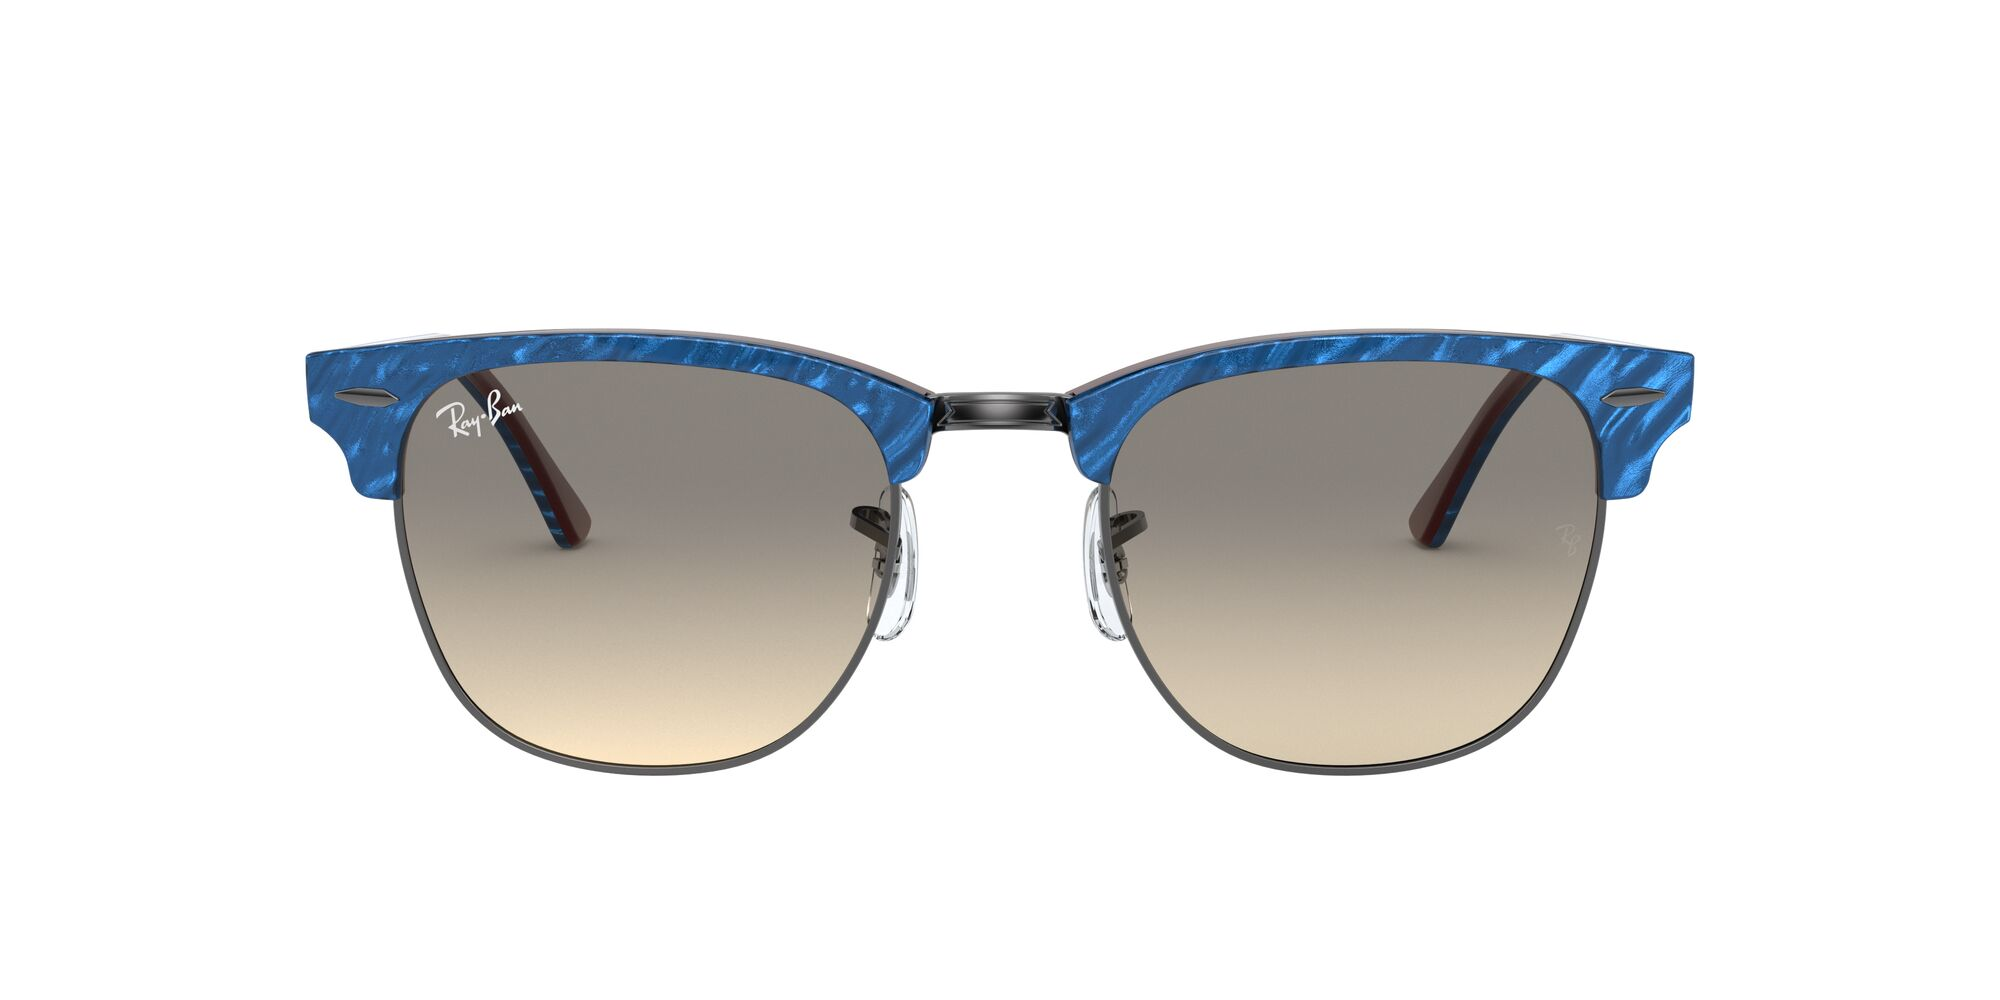 Front Ray-Ban Ray-Ban 0RB3016 131032 49/21 Blauw, Bruin/Grijs